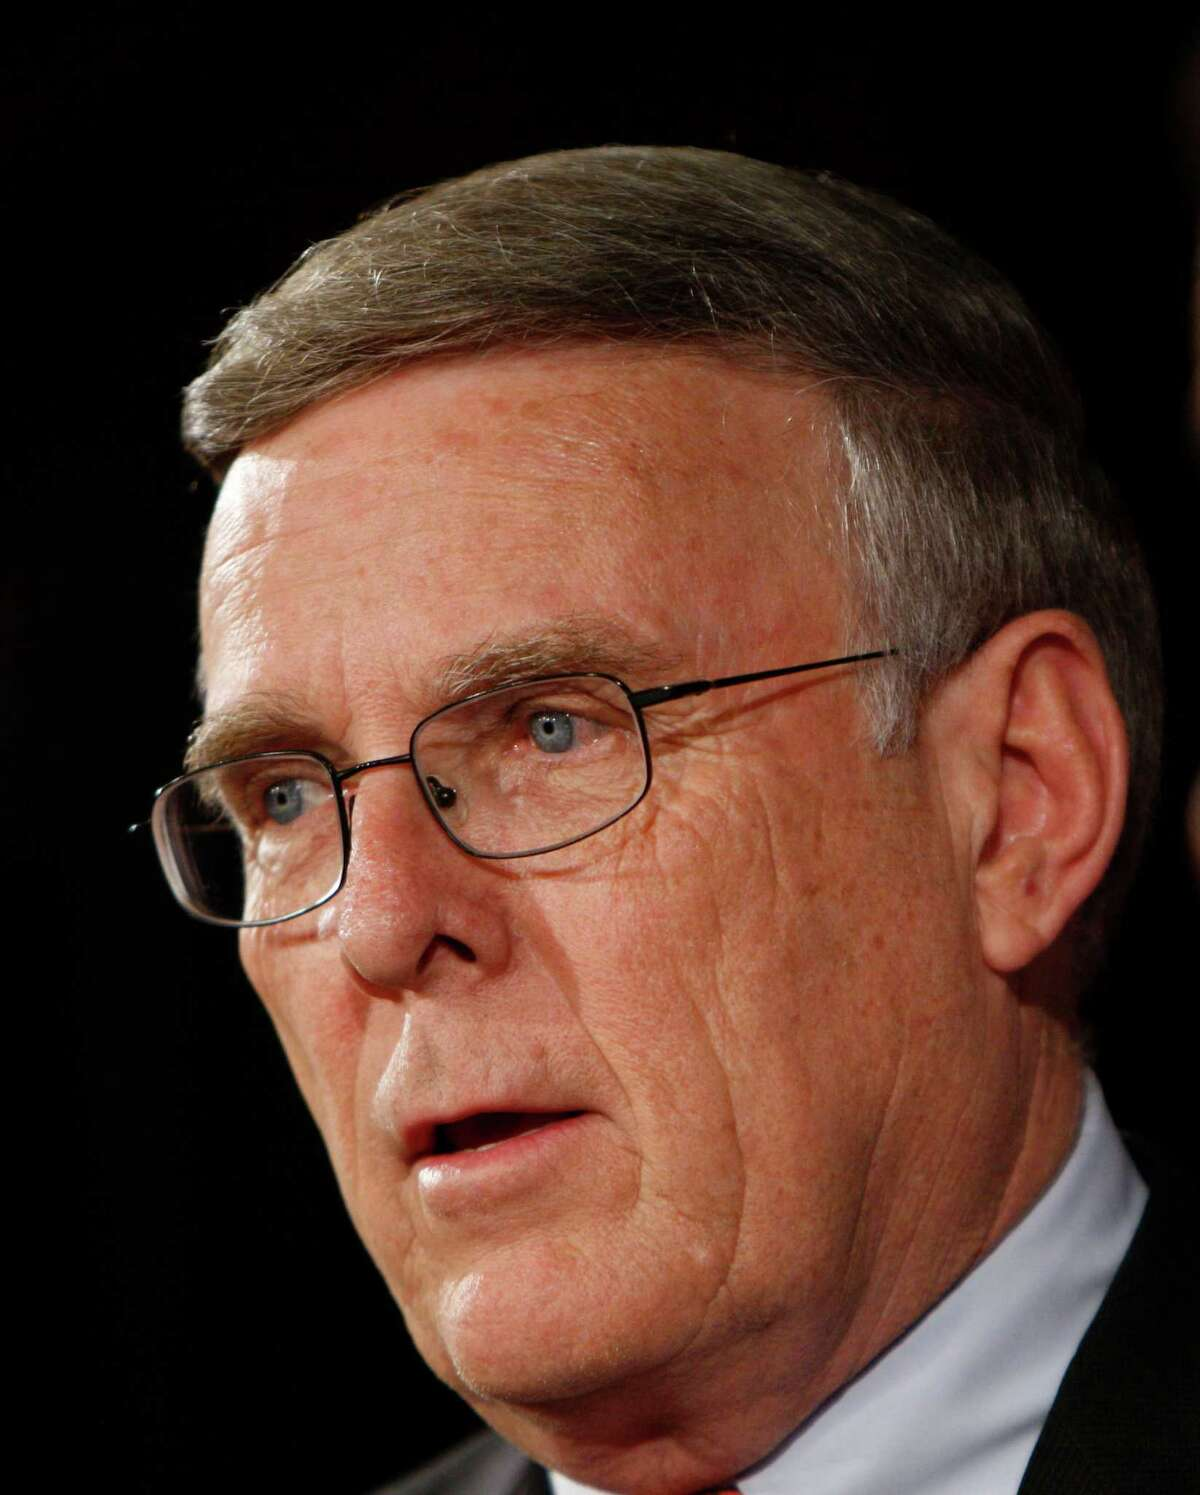 FILE - In this March 4, 2009 file photo, Sen. Byron Dorgan, D-N.D. takes part in a news conference on Capitol Hill in Washington. Dorgan says Jan. 5, 2010, he will not seek re-election to the Senate in 2010, a surprise announcement that could give Republicans an opportunity to pick up a seat from the Republican-leaning state. (AP Photo/Pablo Martinez Monsivais, FILE)